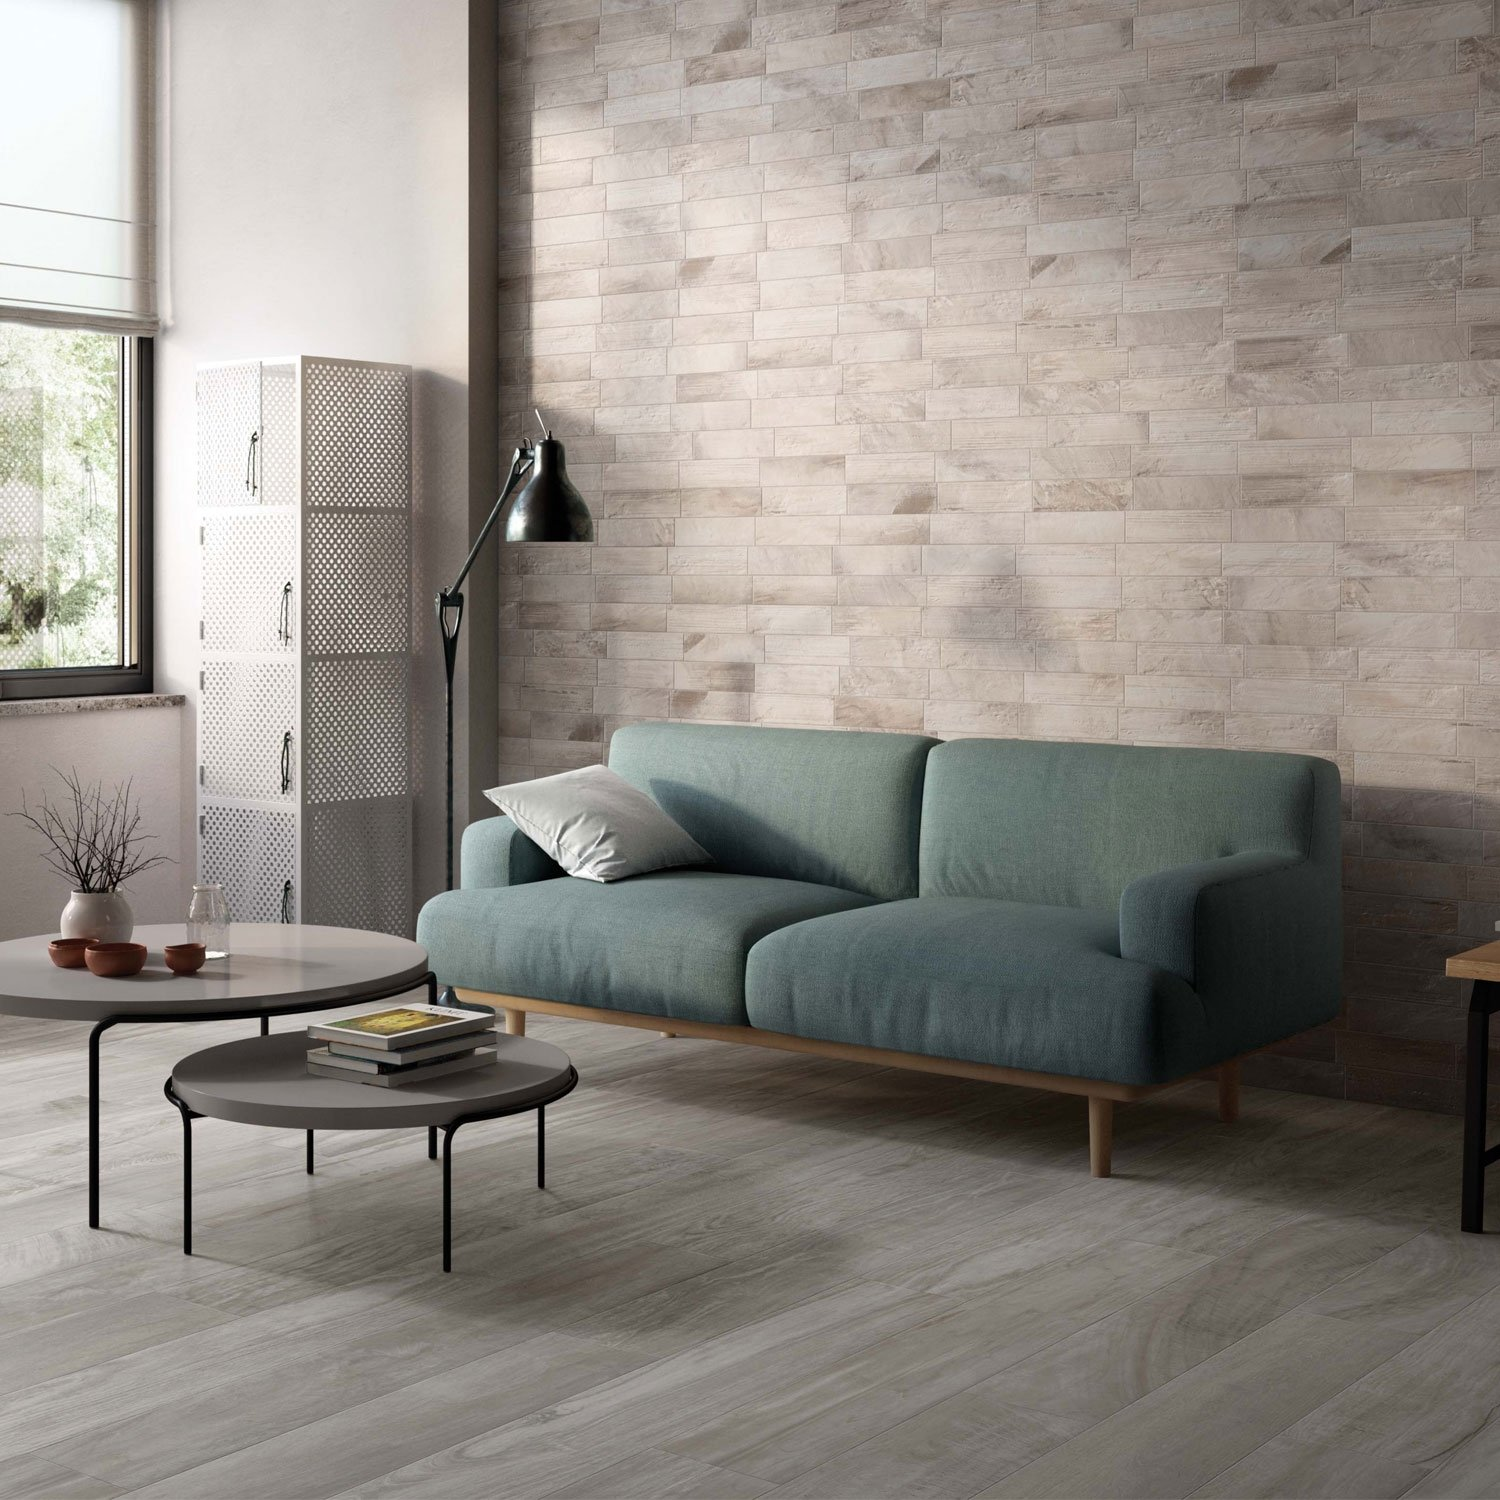 RAK Circle Wood Porcelain Tiles - 1200mm x 195mm - Grey (Box of 5)